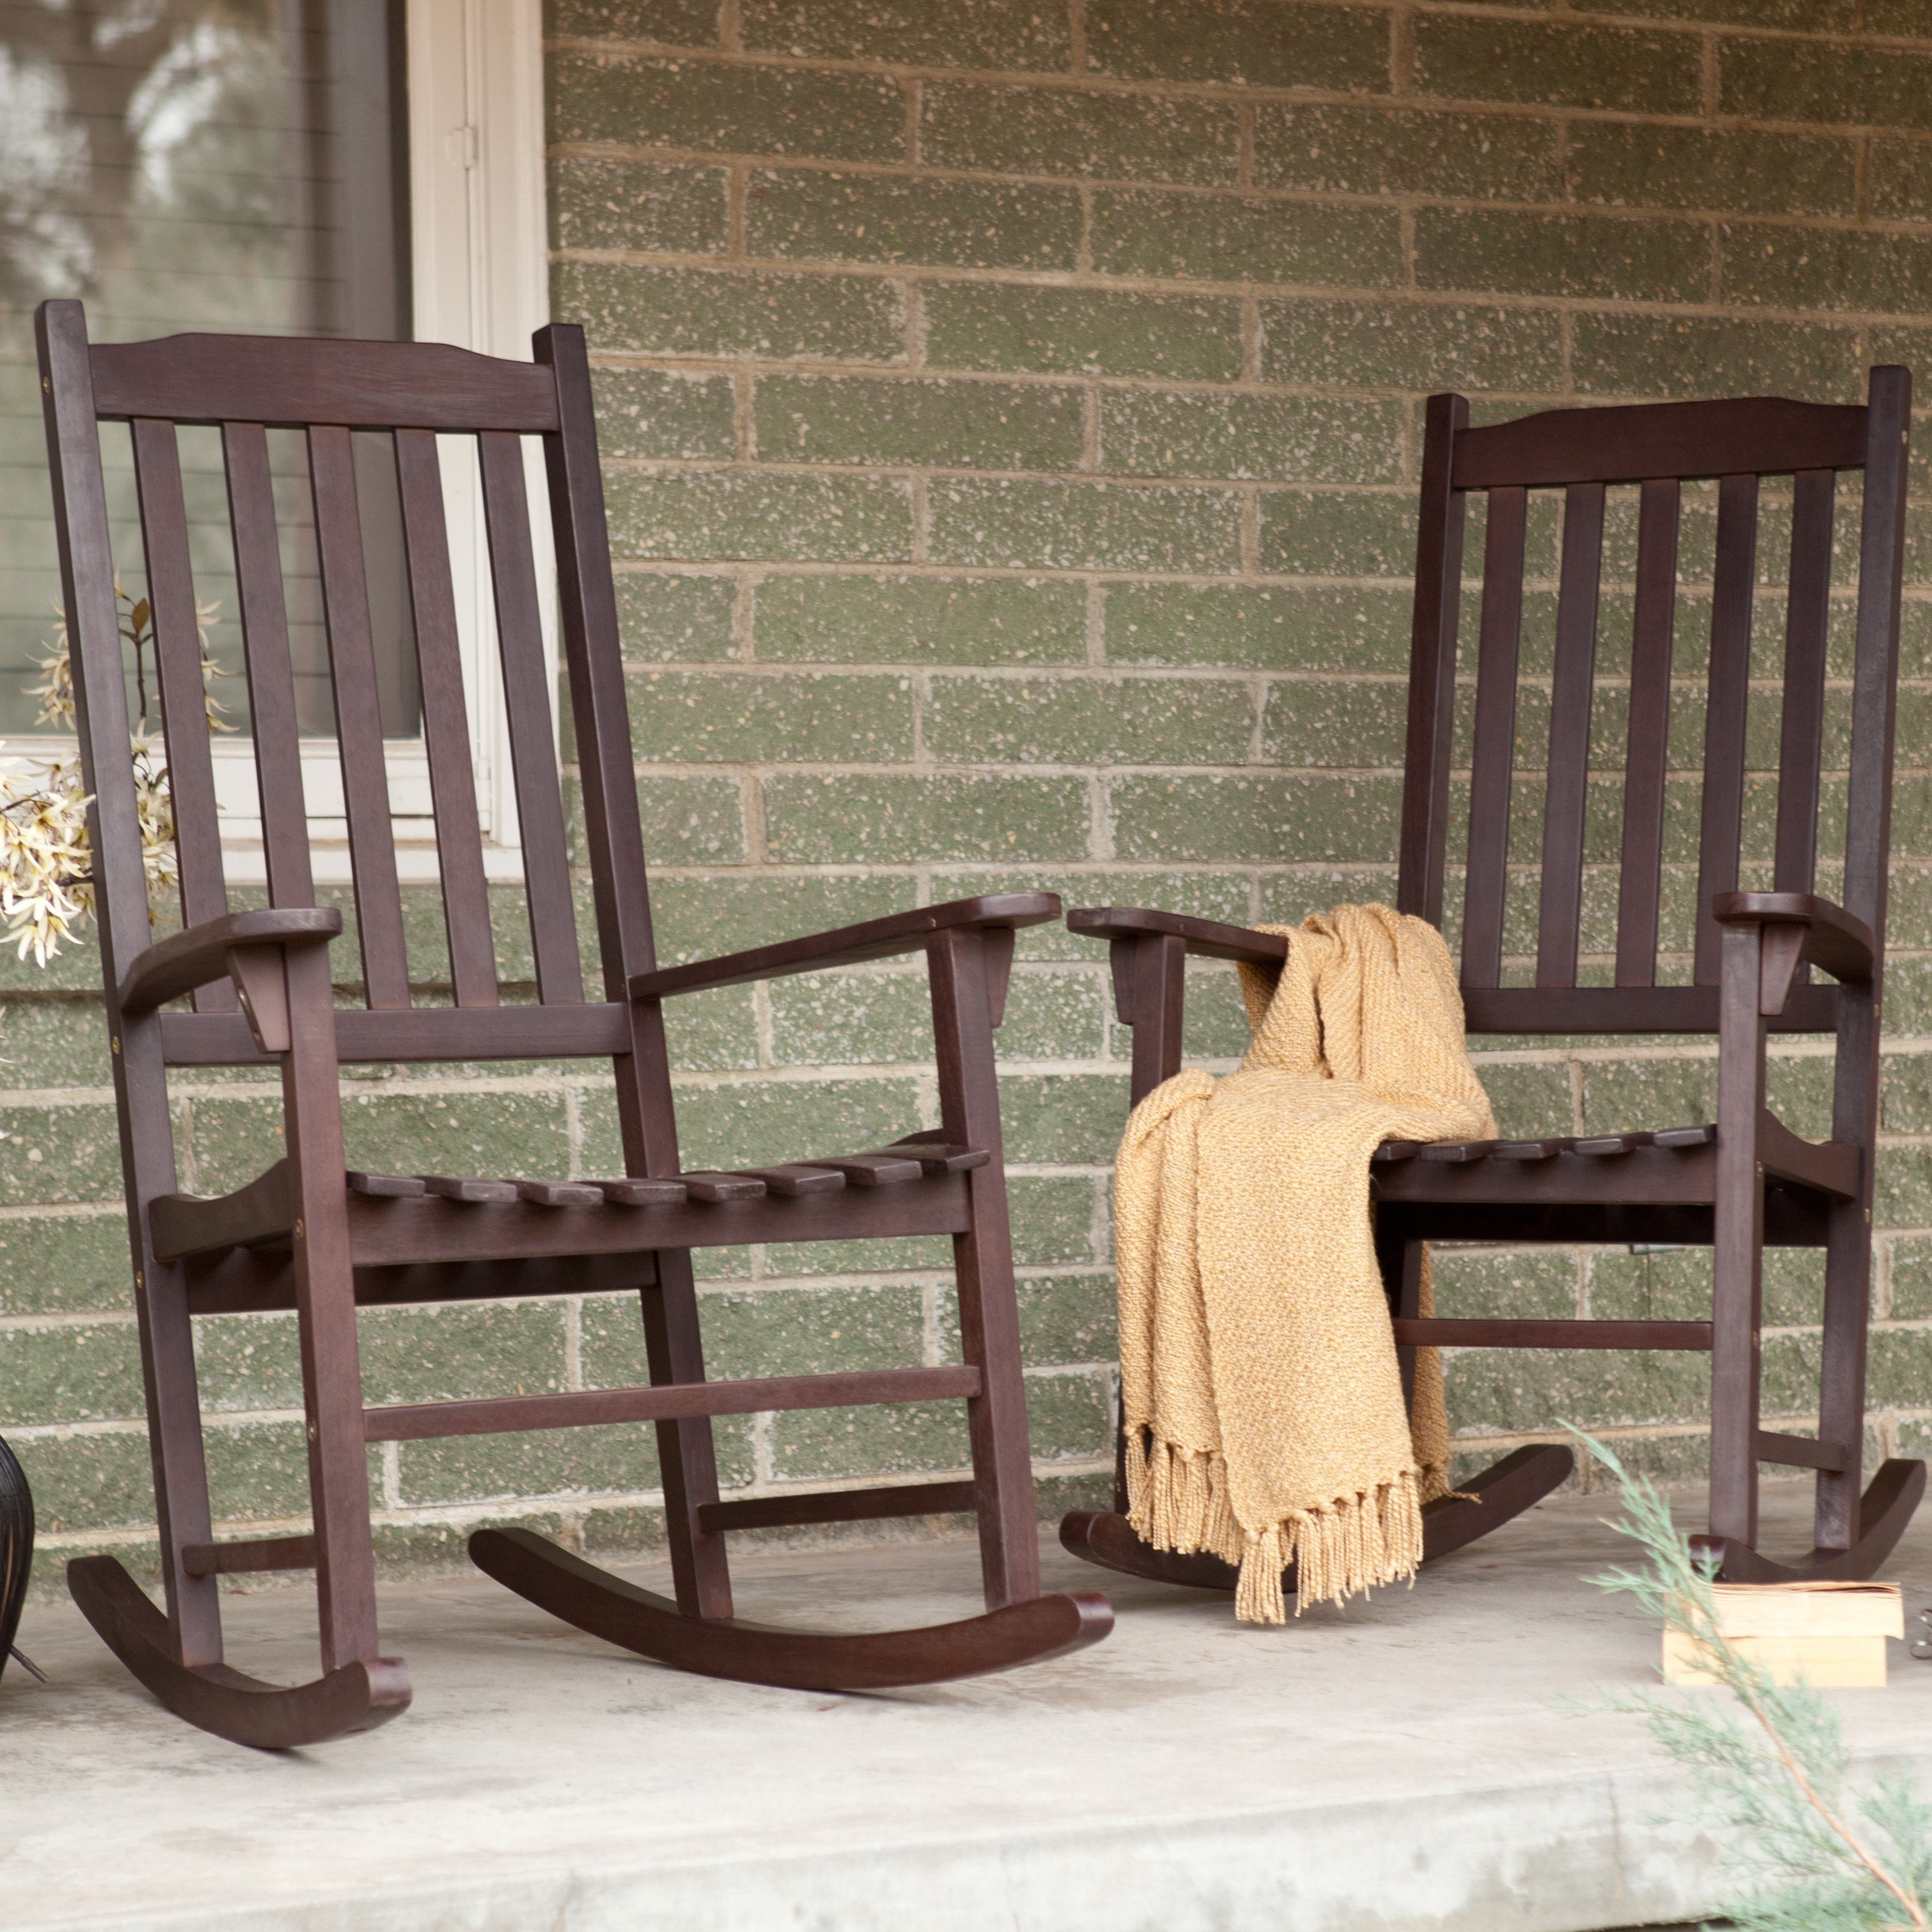 Oversized Patio Rocking Chairs With Regard To Well Known A Guide To Find The Right Outdoor Rocking Chair For Your House (View 12 of 15)